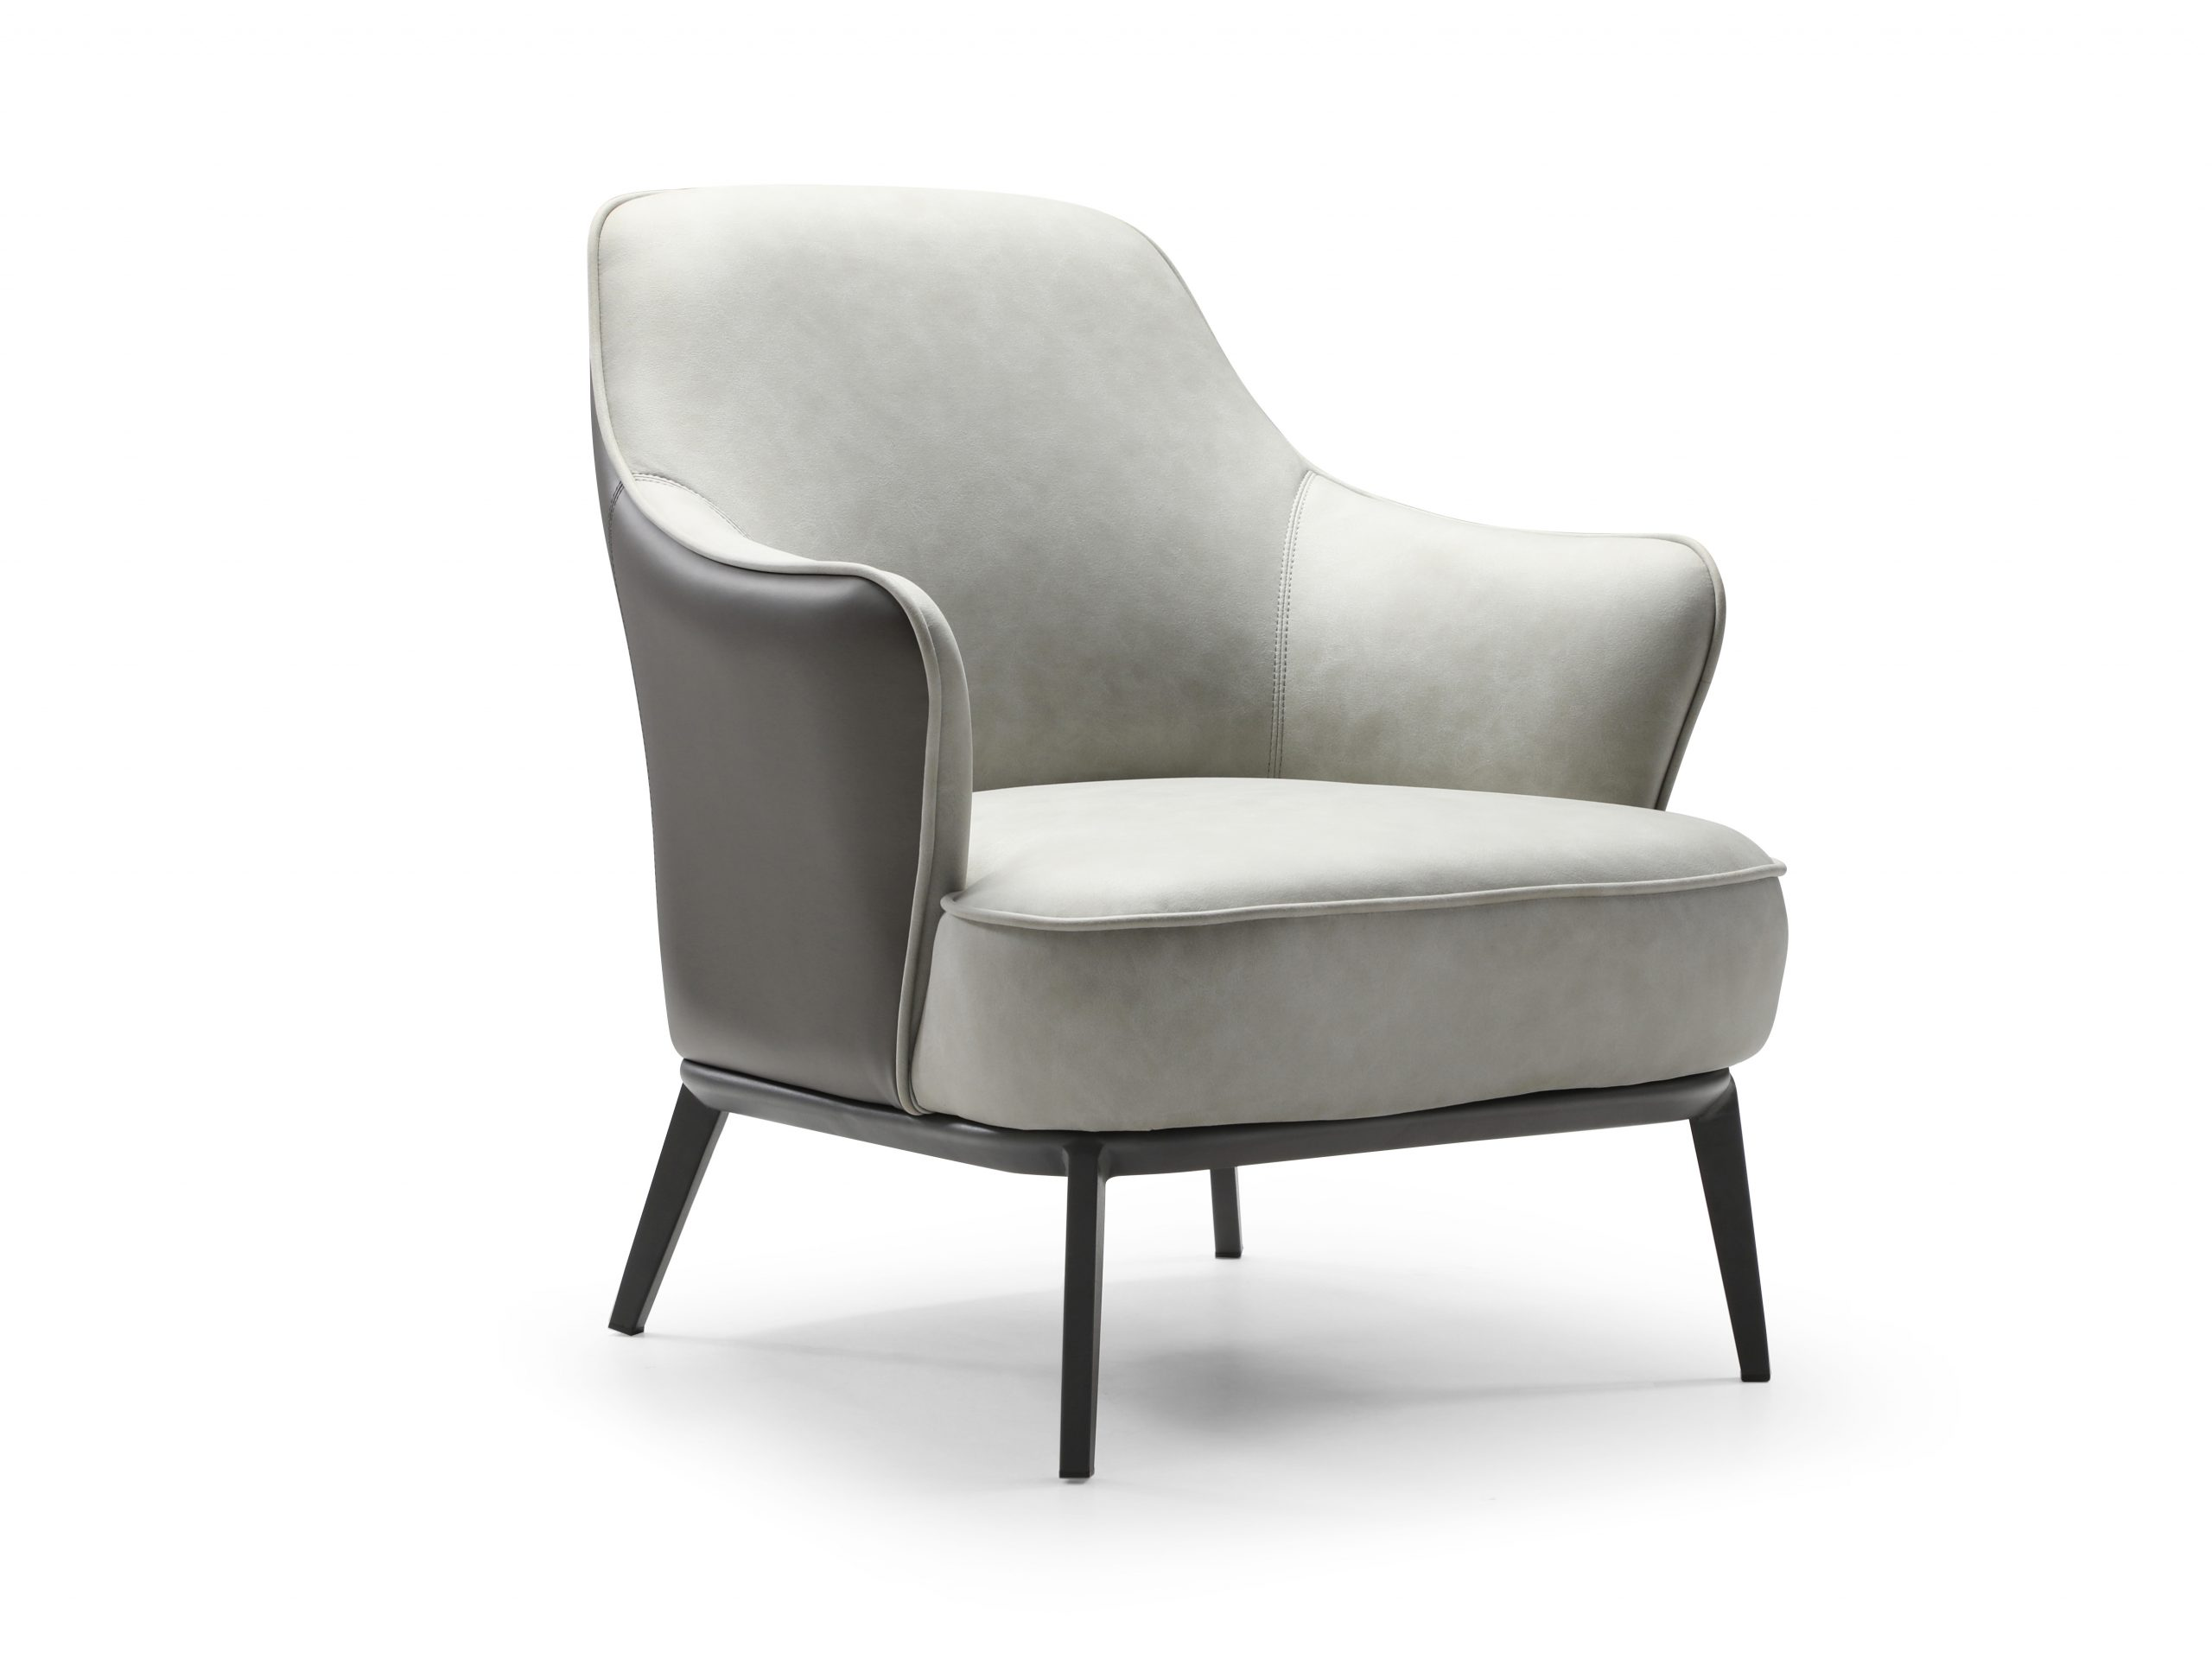 Sunizona Leisure Chair is available in dual material with the front, back and seat being light grey waterproof fabric and the outer back being dark grey faux leather. This dual material accent chair is complimented with a sanded black coated steel frame.